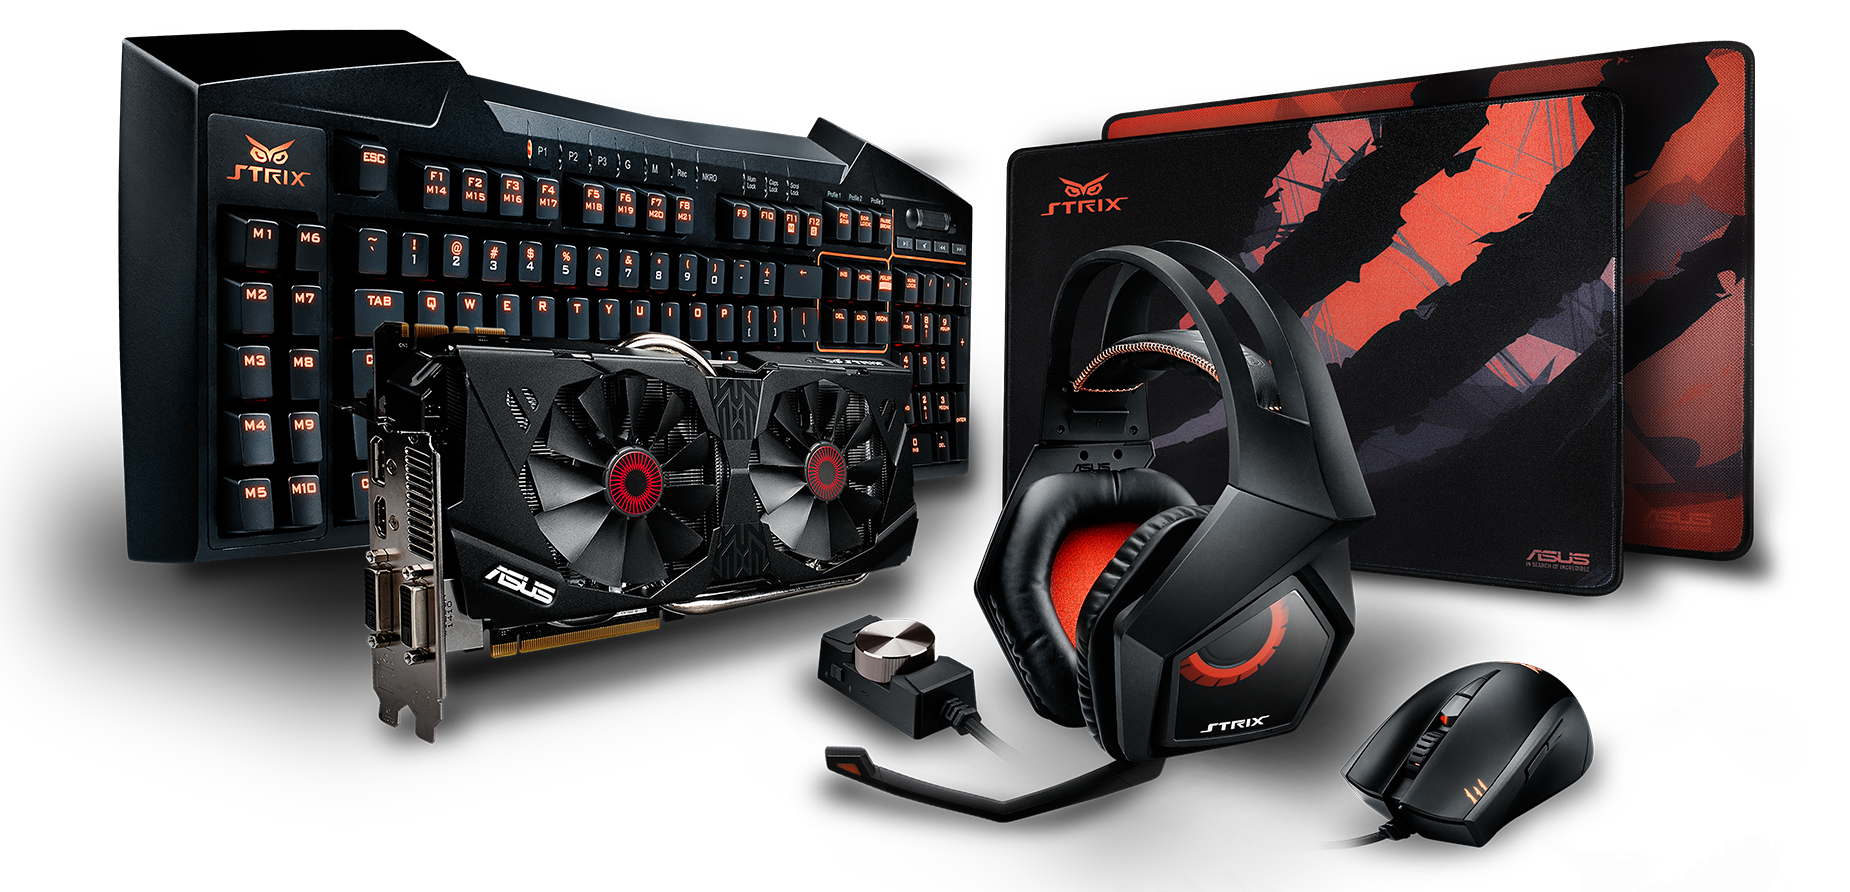 strix glide speed rog republic of gamers asus usa